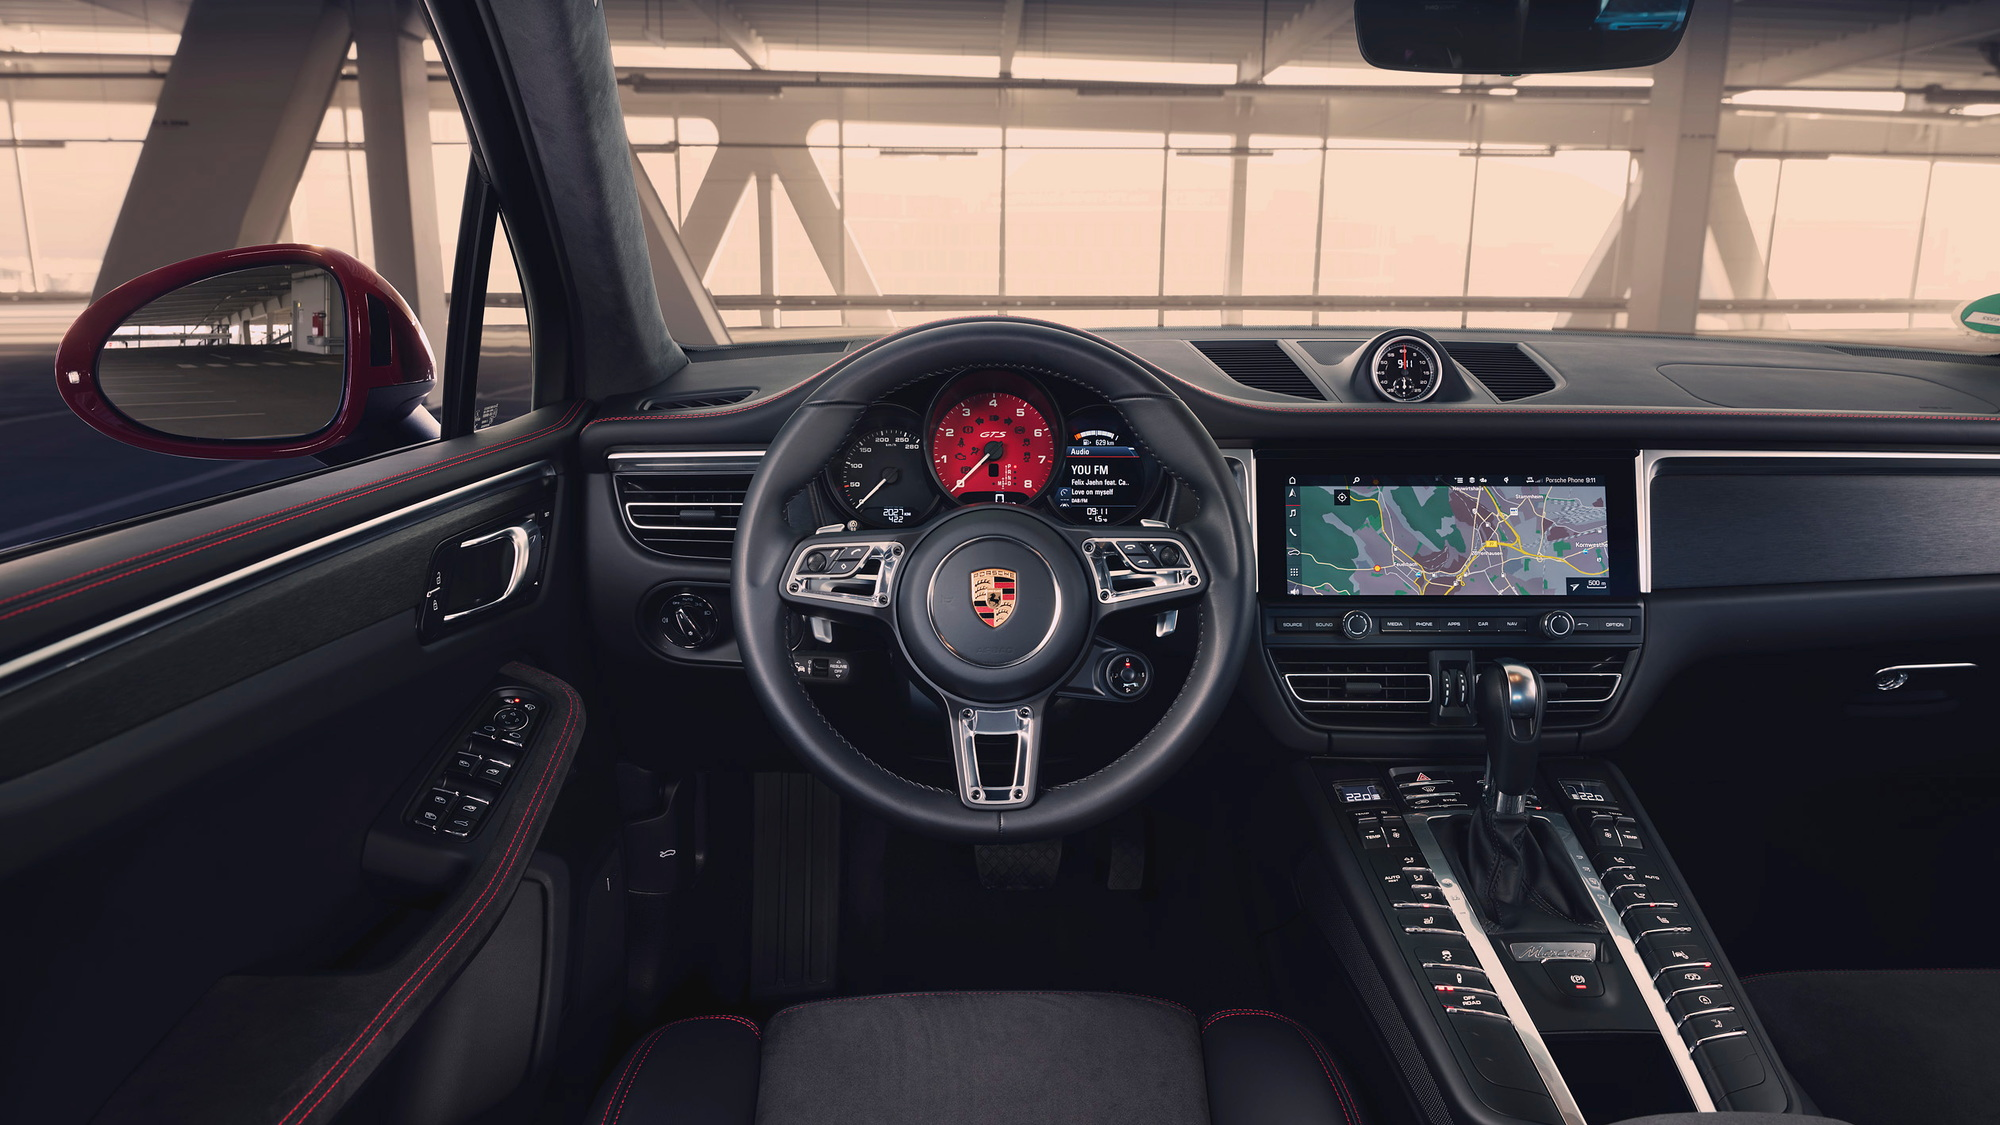 2020 Porsche Macan Gts Aims For The Sweet Spot In Crossover S Last Lap